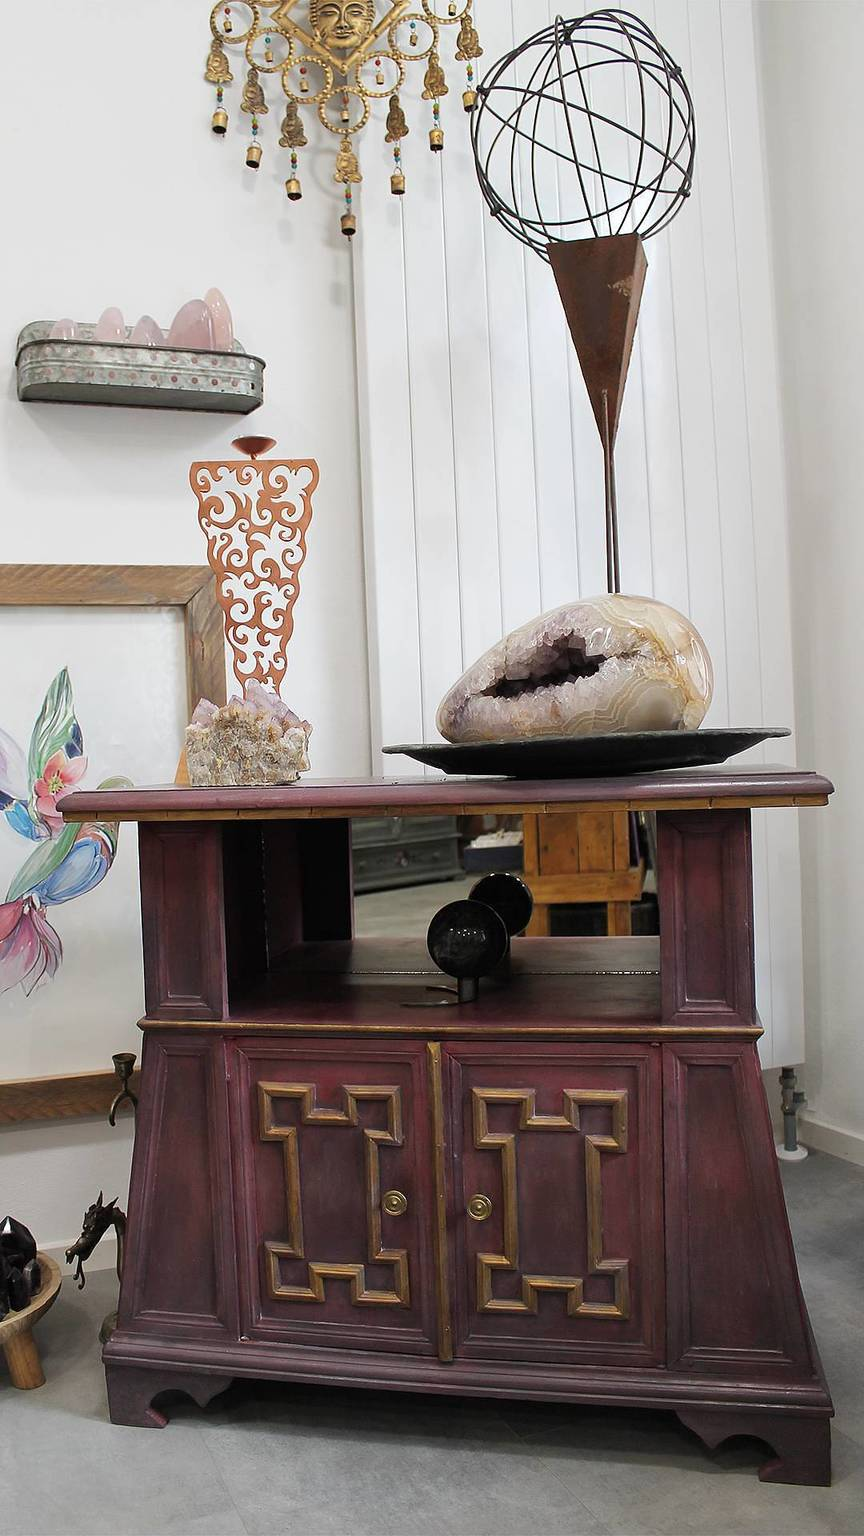 a photo of an upcycled chinese motif cabinet upcycled by Mali